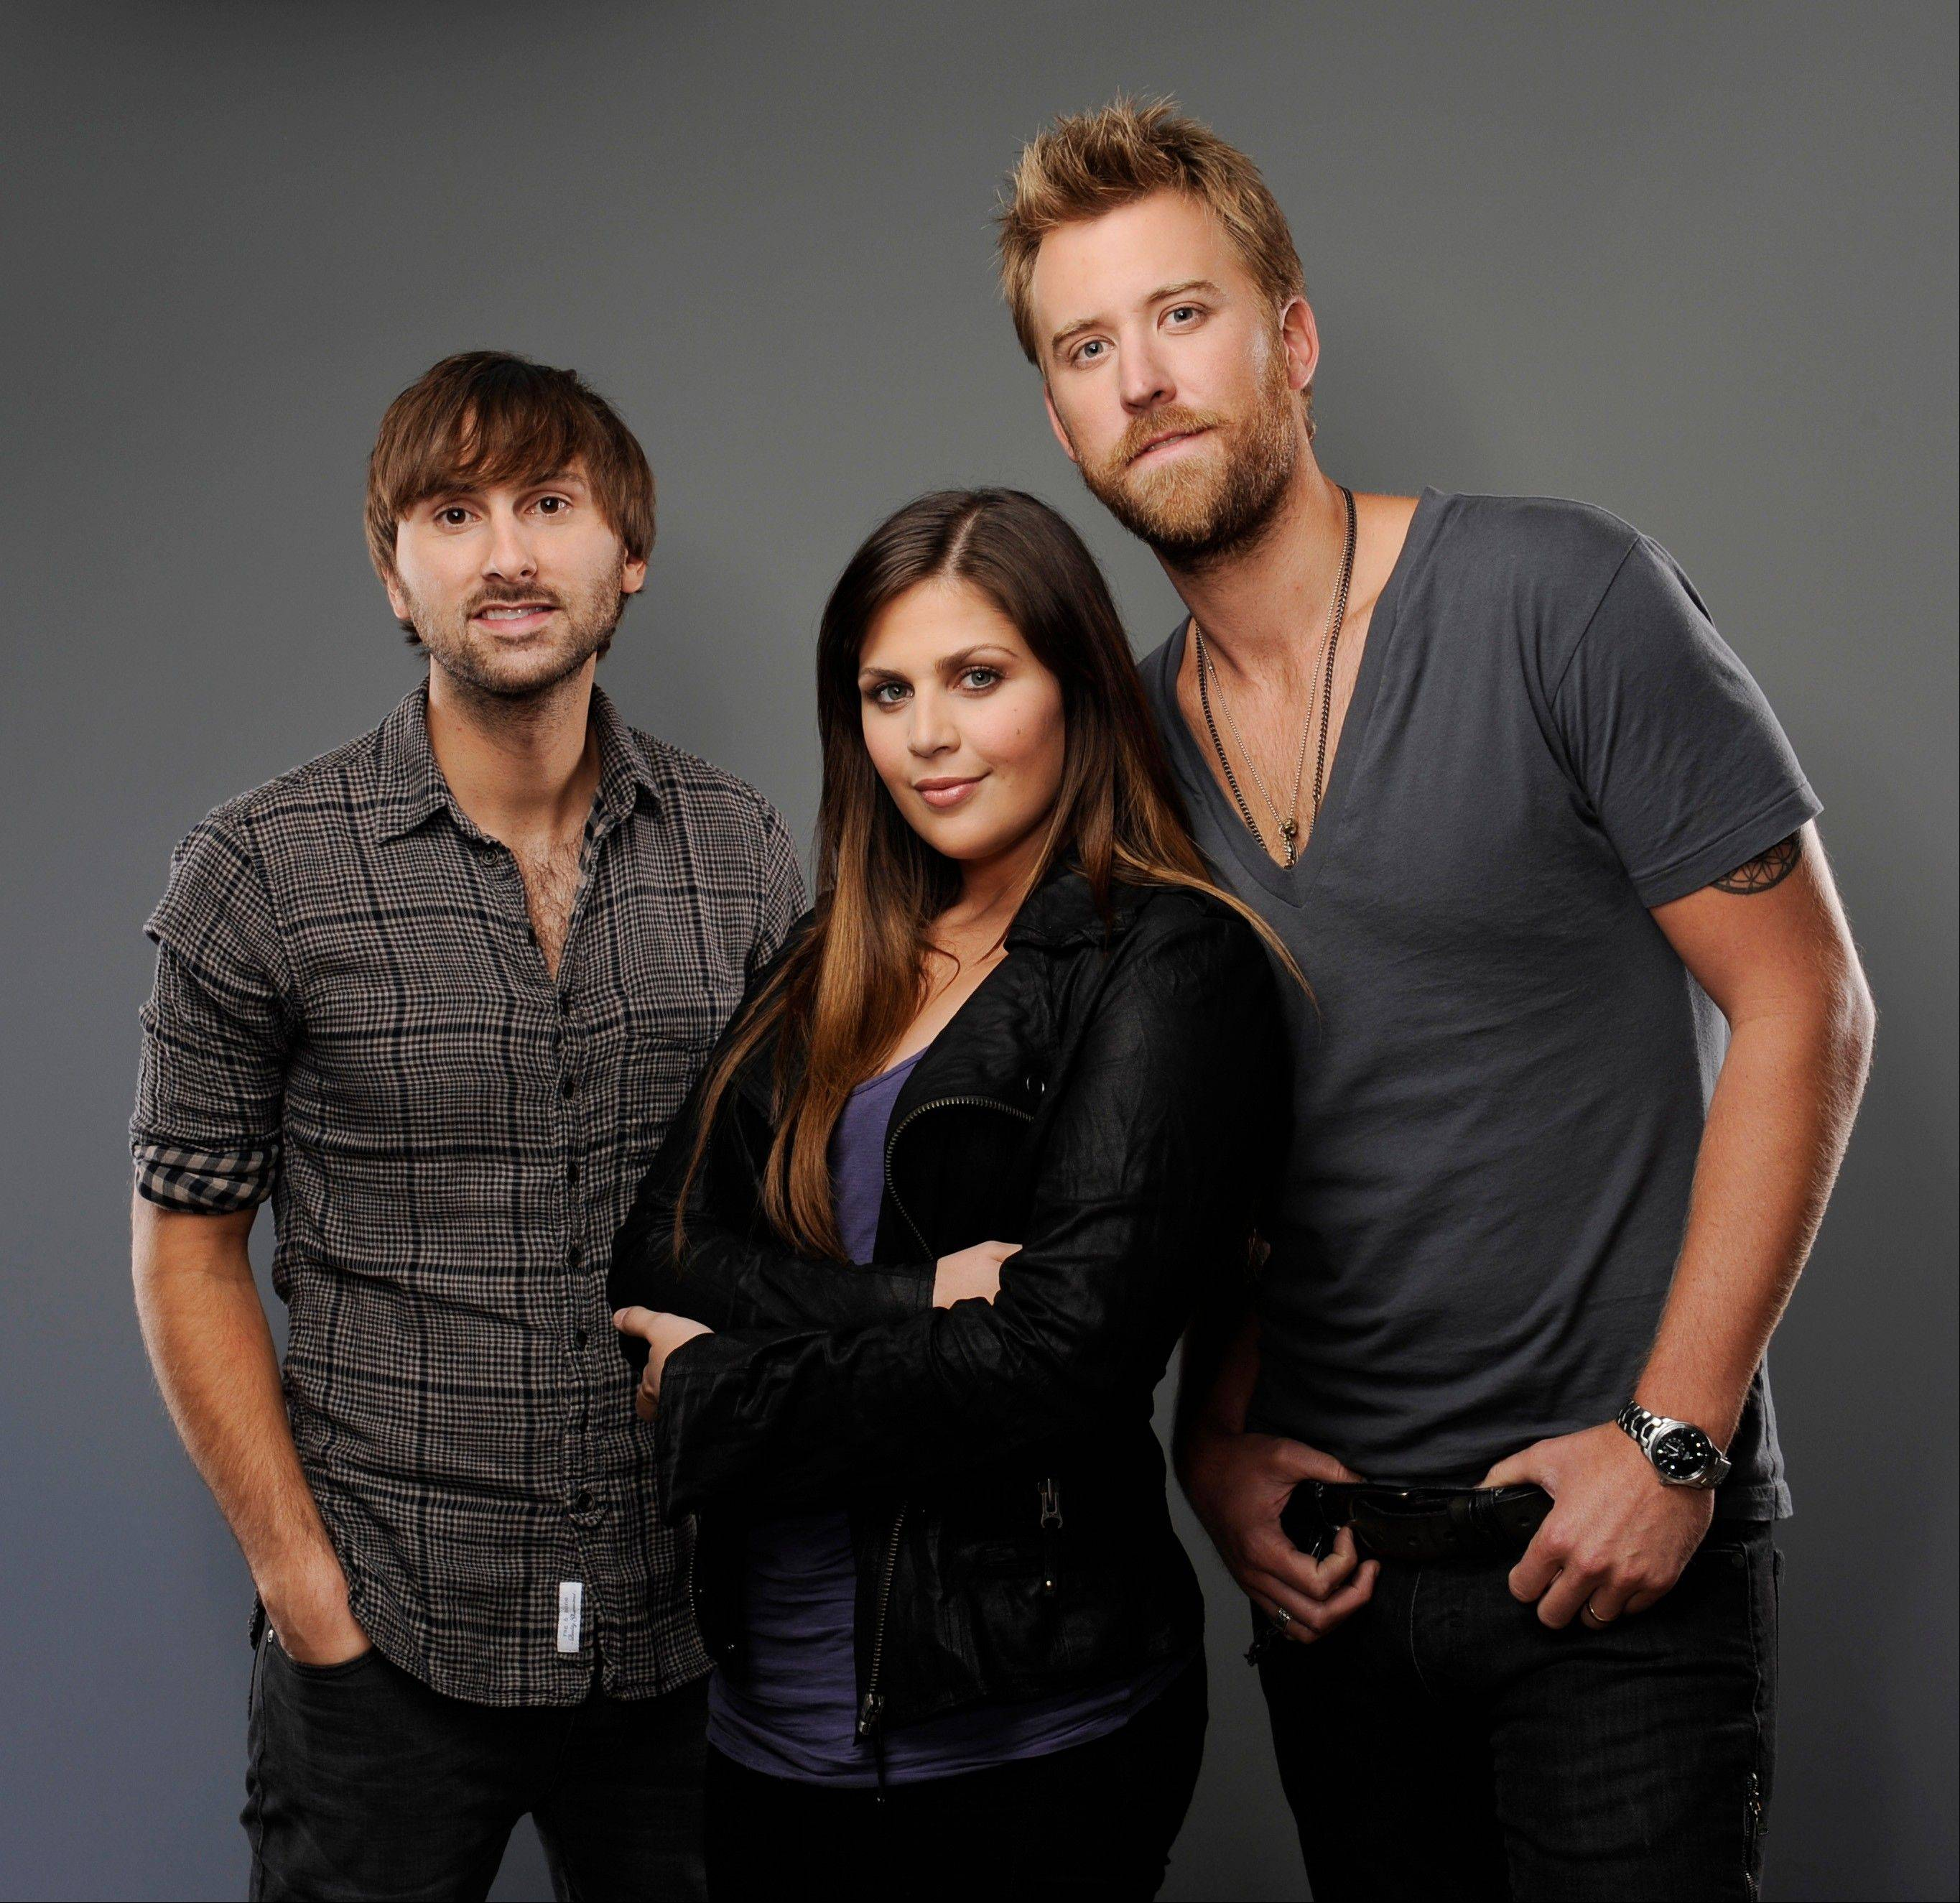 Lady Antebellum � consisting of Dave Haywood, Hillary Scott and Charles Kelley � will play the Allstate Arena in Rosemont on Nov. 15.